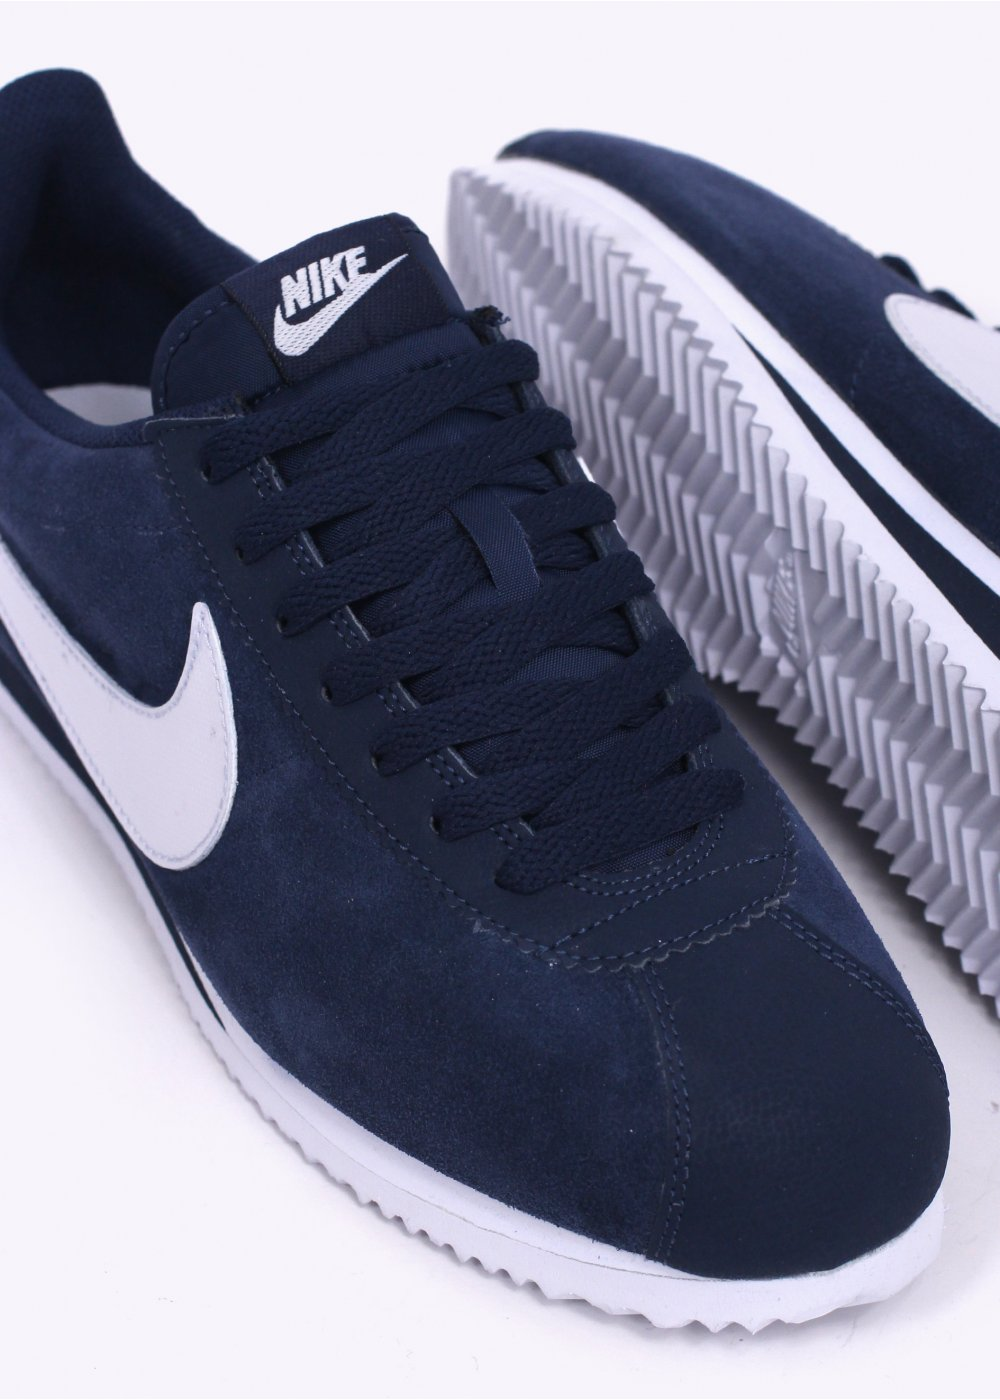 Selling - nike trainers navy blue - OFF